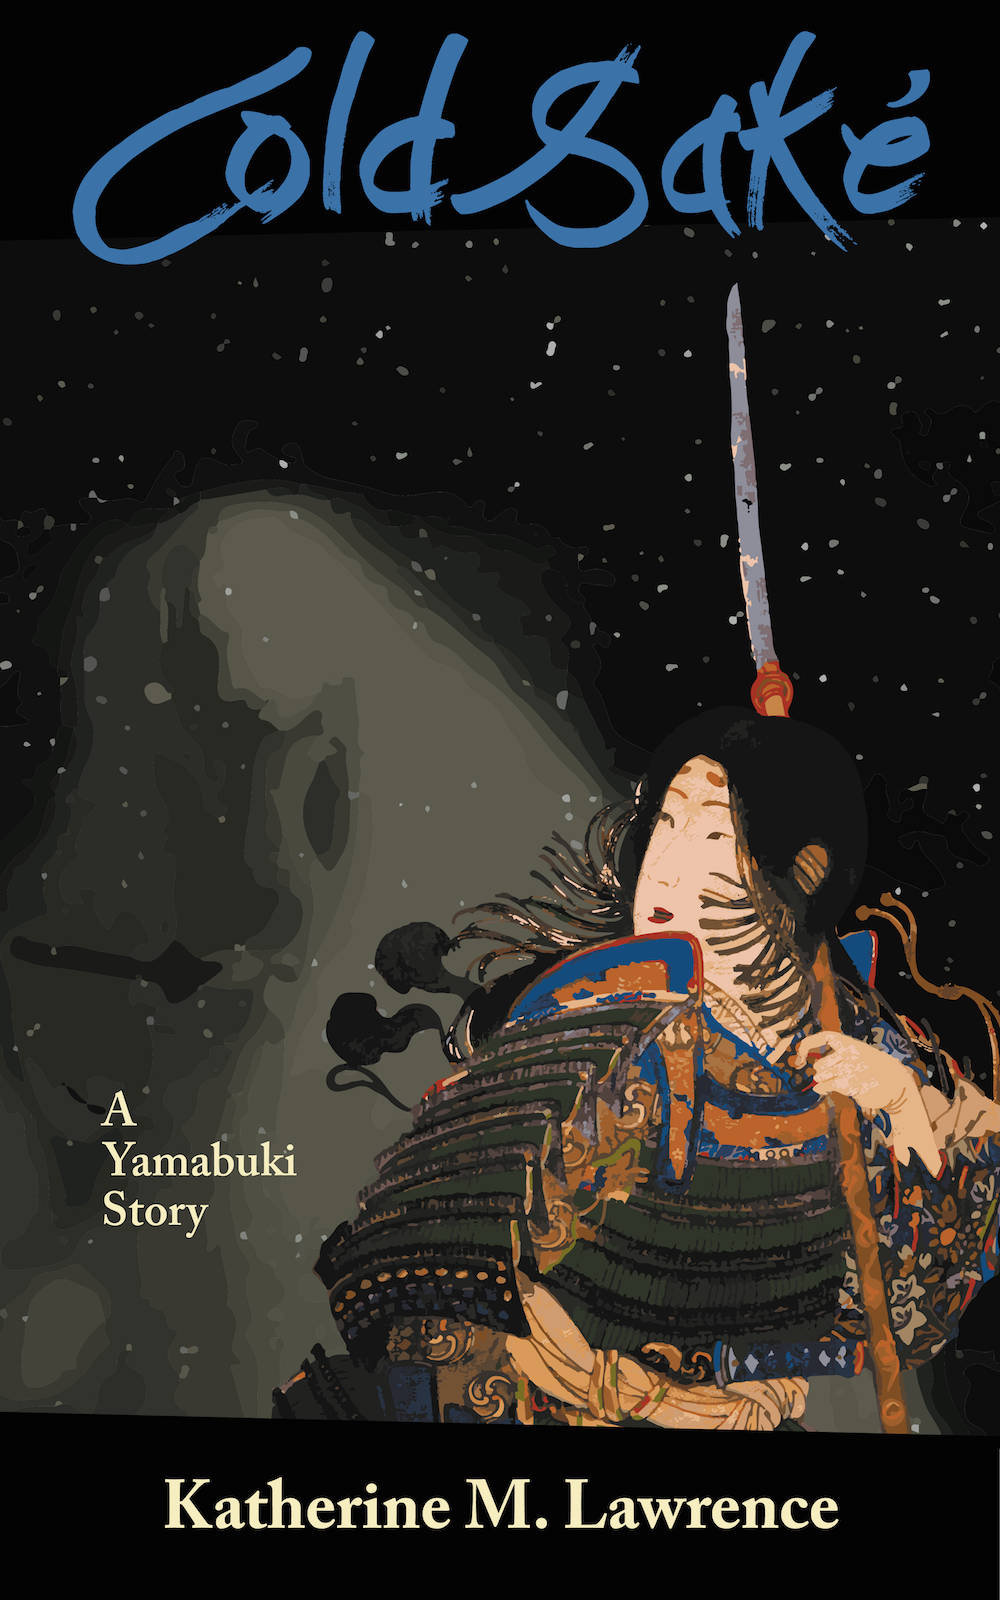 Cold Saké A female samurai, 17 years old, alone in the wilderness, arrived at a forgotten inn, where she ends up fighting for her life and her sanity.